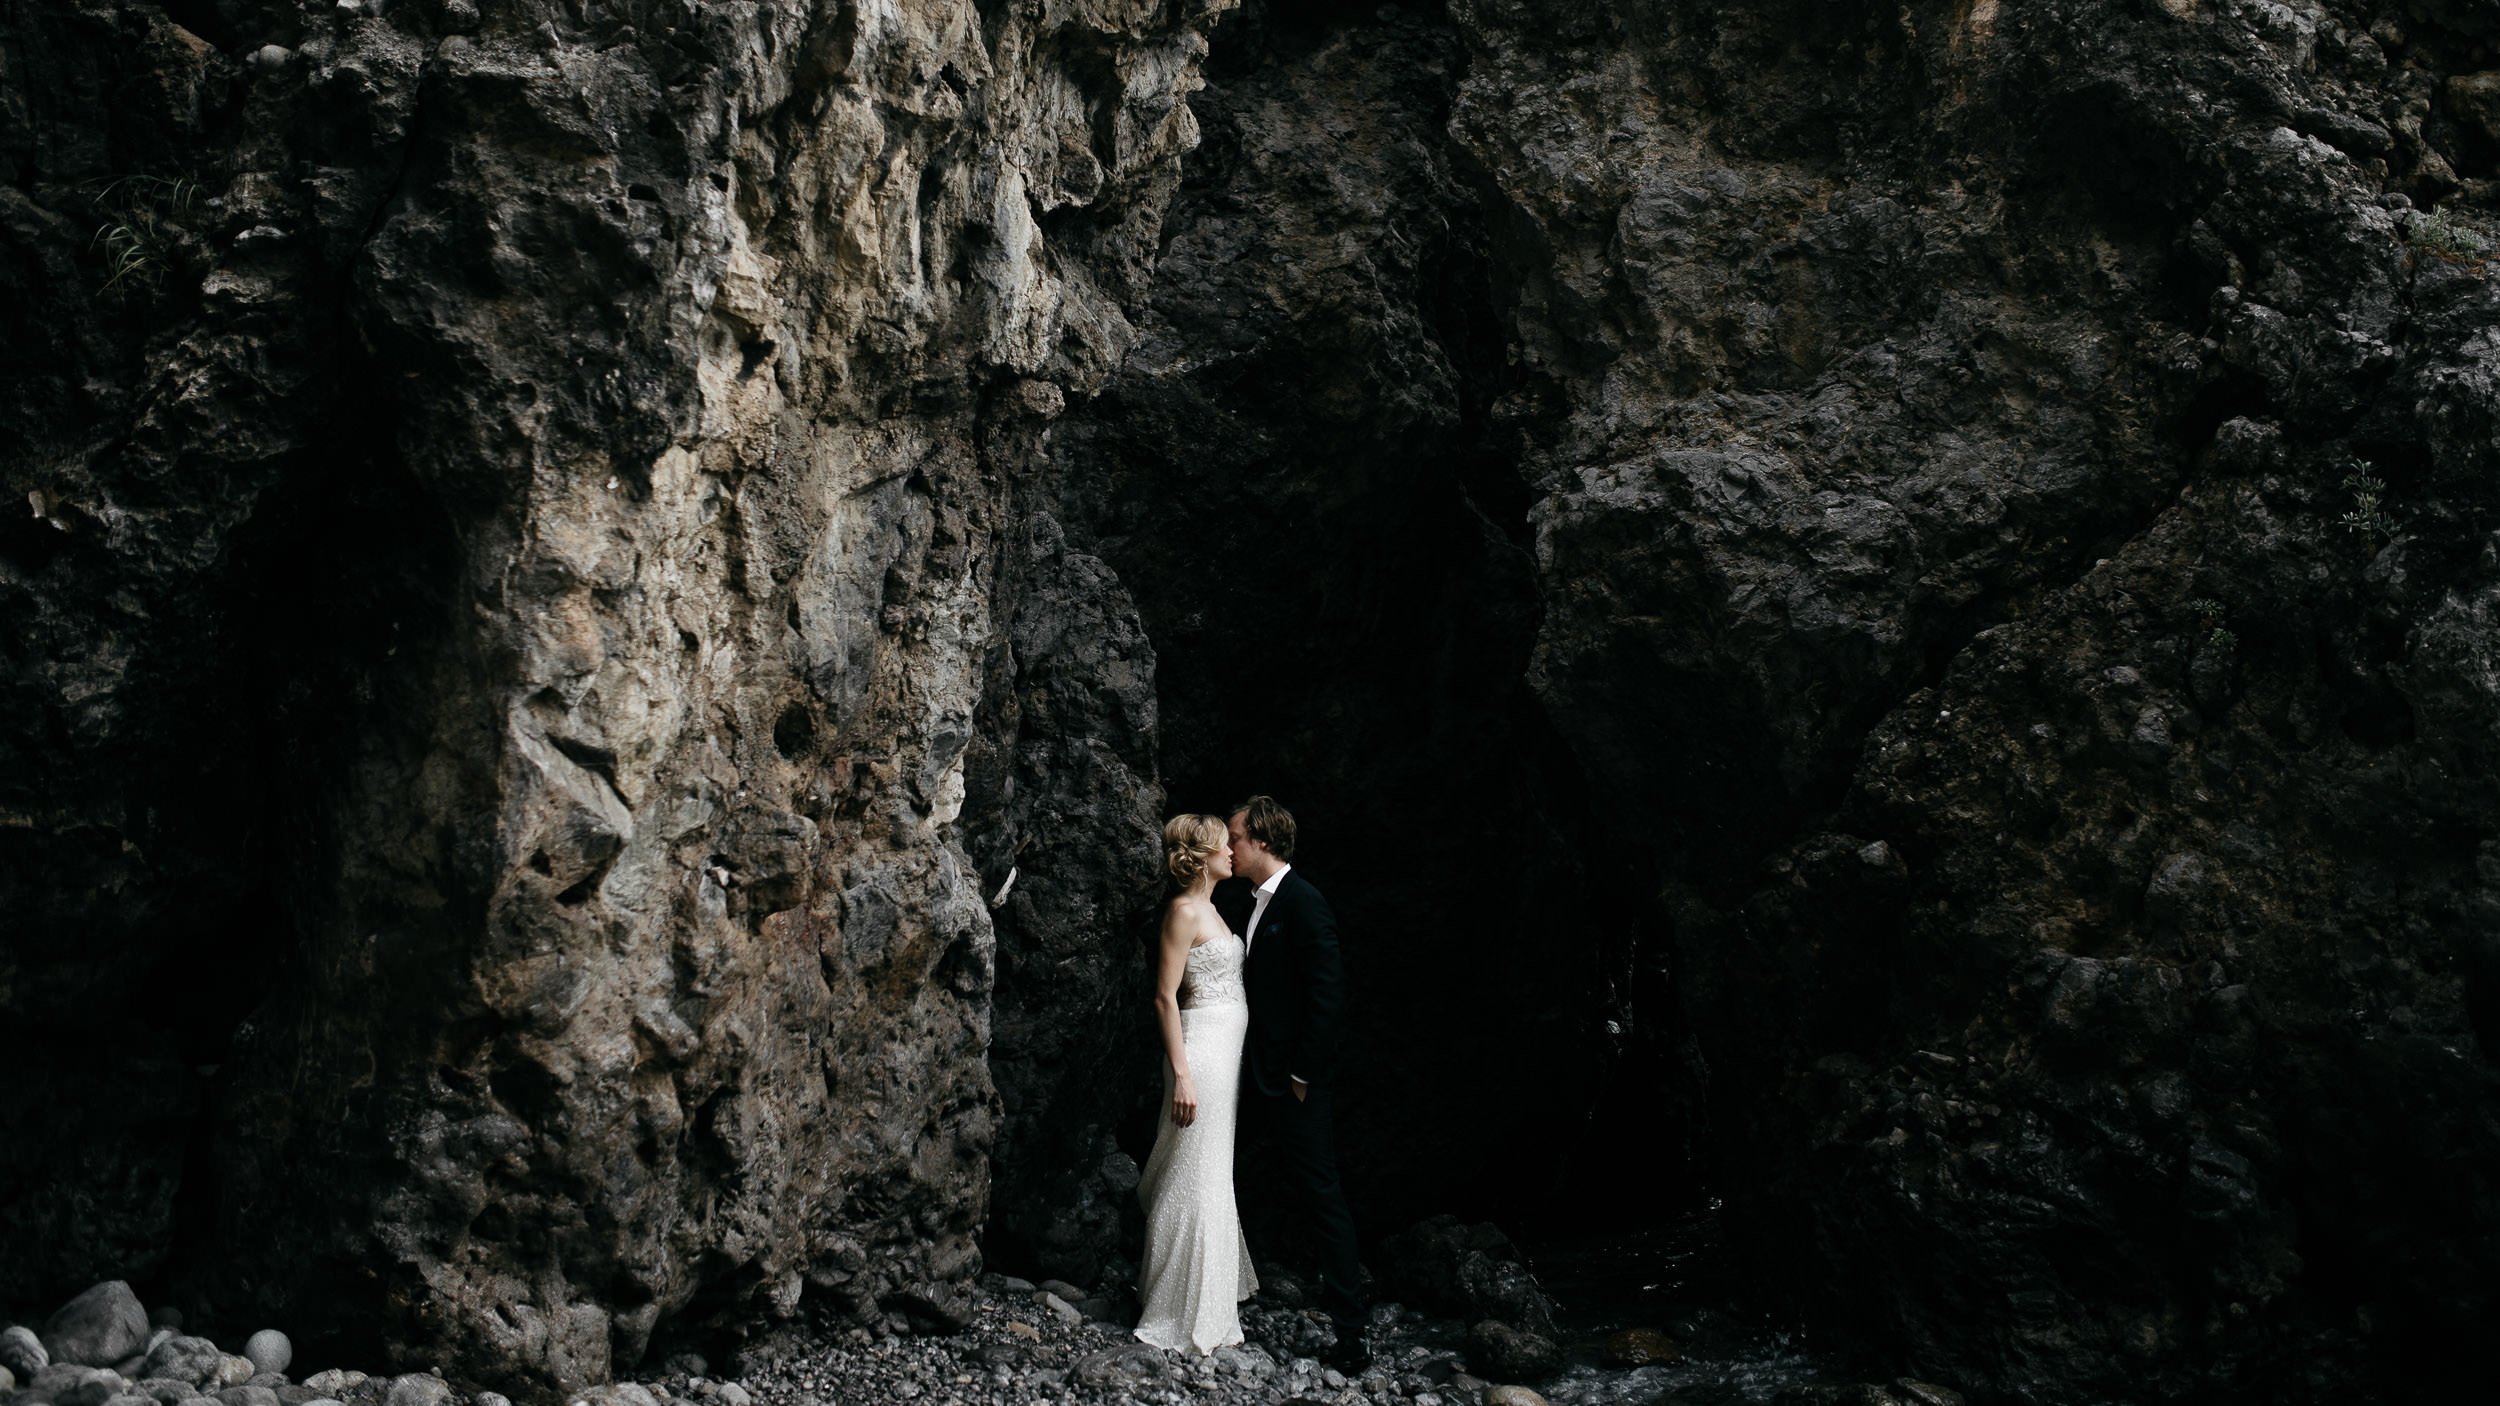 Jean-Laurent Gaudy, The Keys Destination Wedding Elopement Photographer.